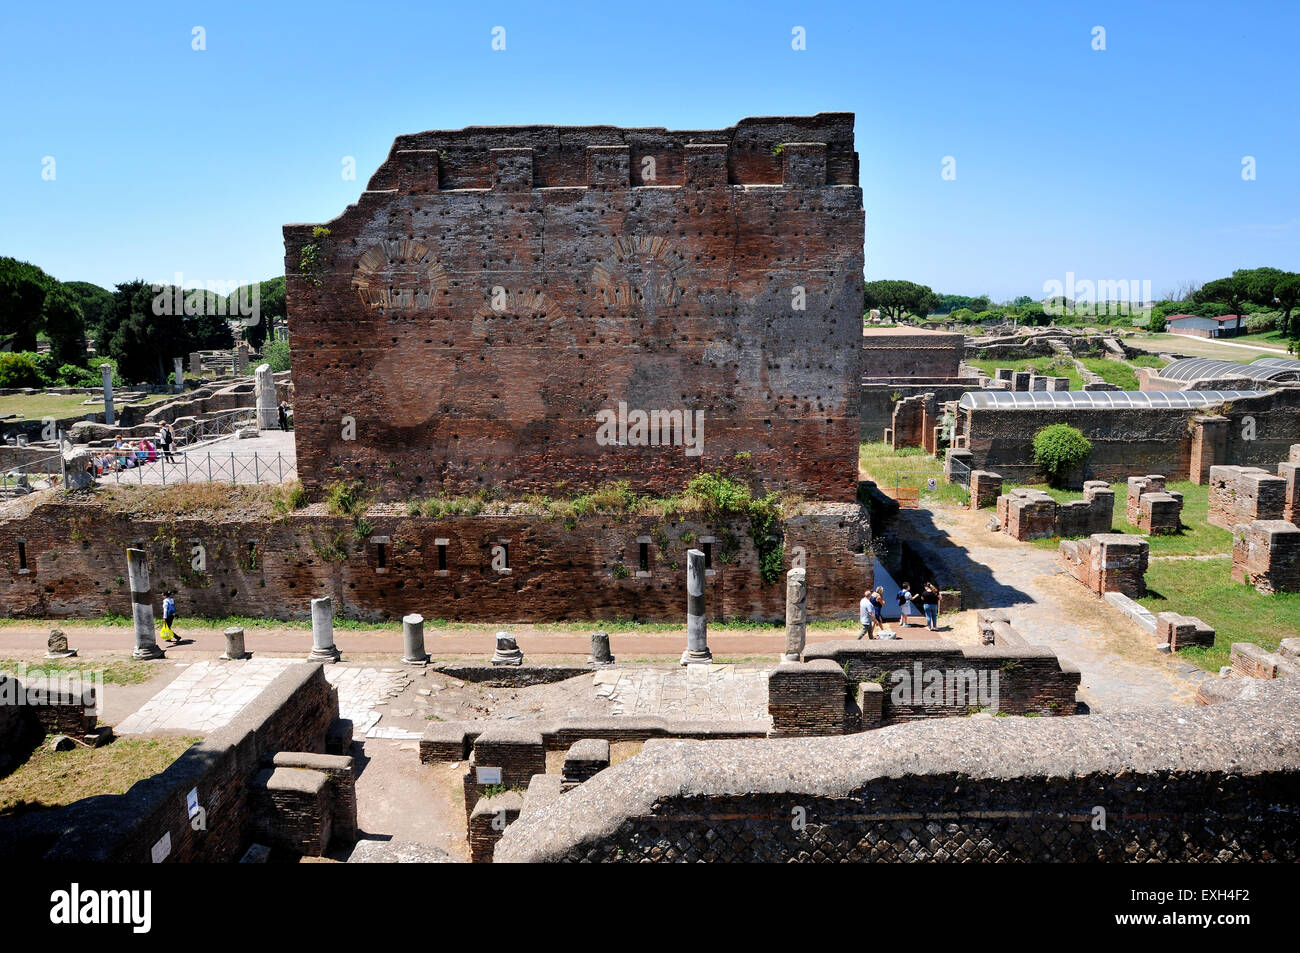 View of the ruins of Ostia Antica, the ancient port of Rome Italy. Picture by Paul Heyes, Tuesday June 2, 2015. - Stock Image